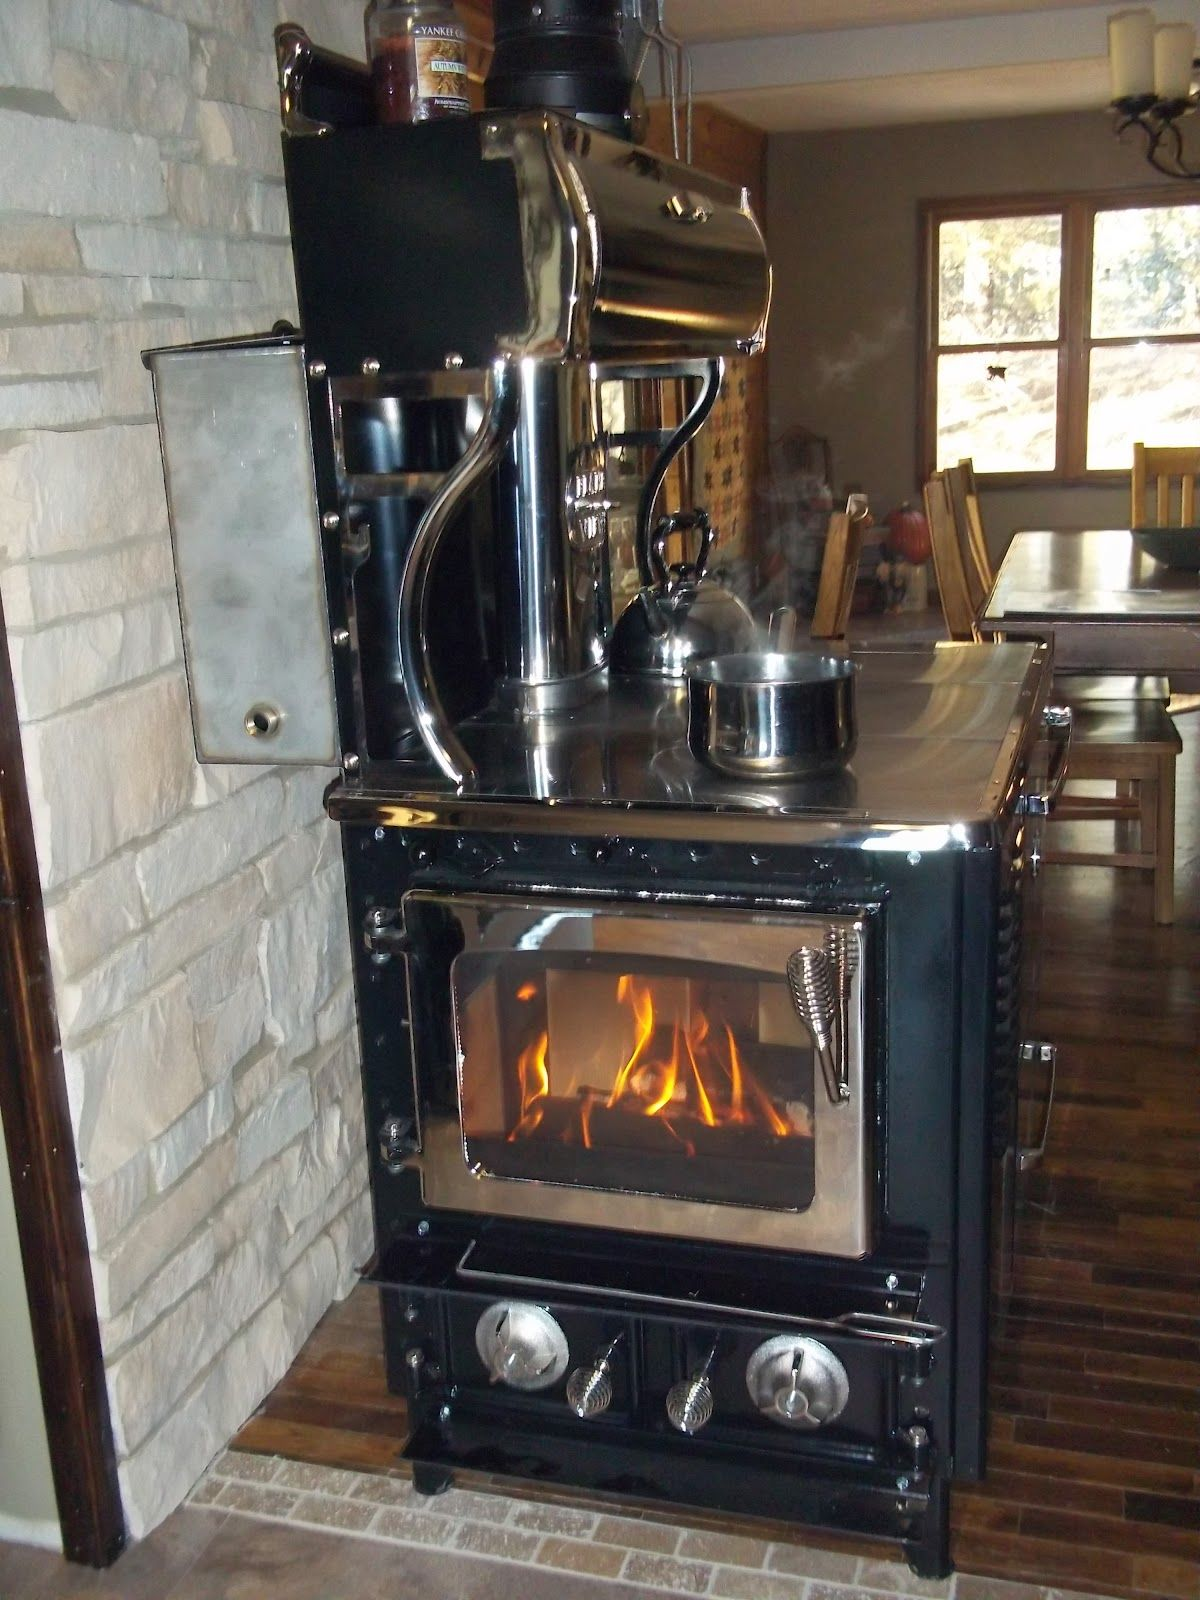 Homesteading Wife: First Fire - Wood Cook Stove - Ambra Decorative The Ambra Wood Burning Cooking Stoves Offer Large